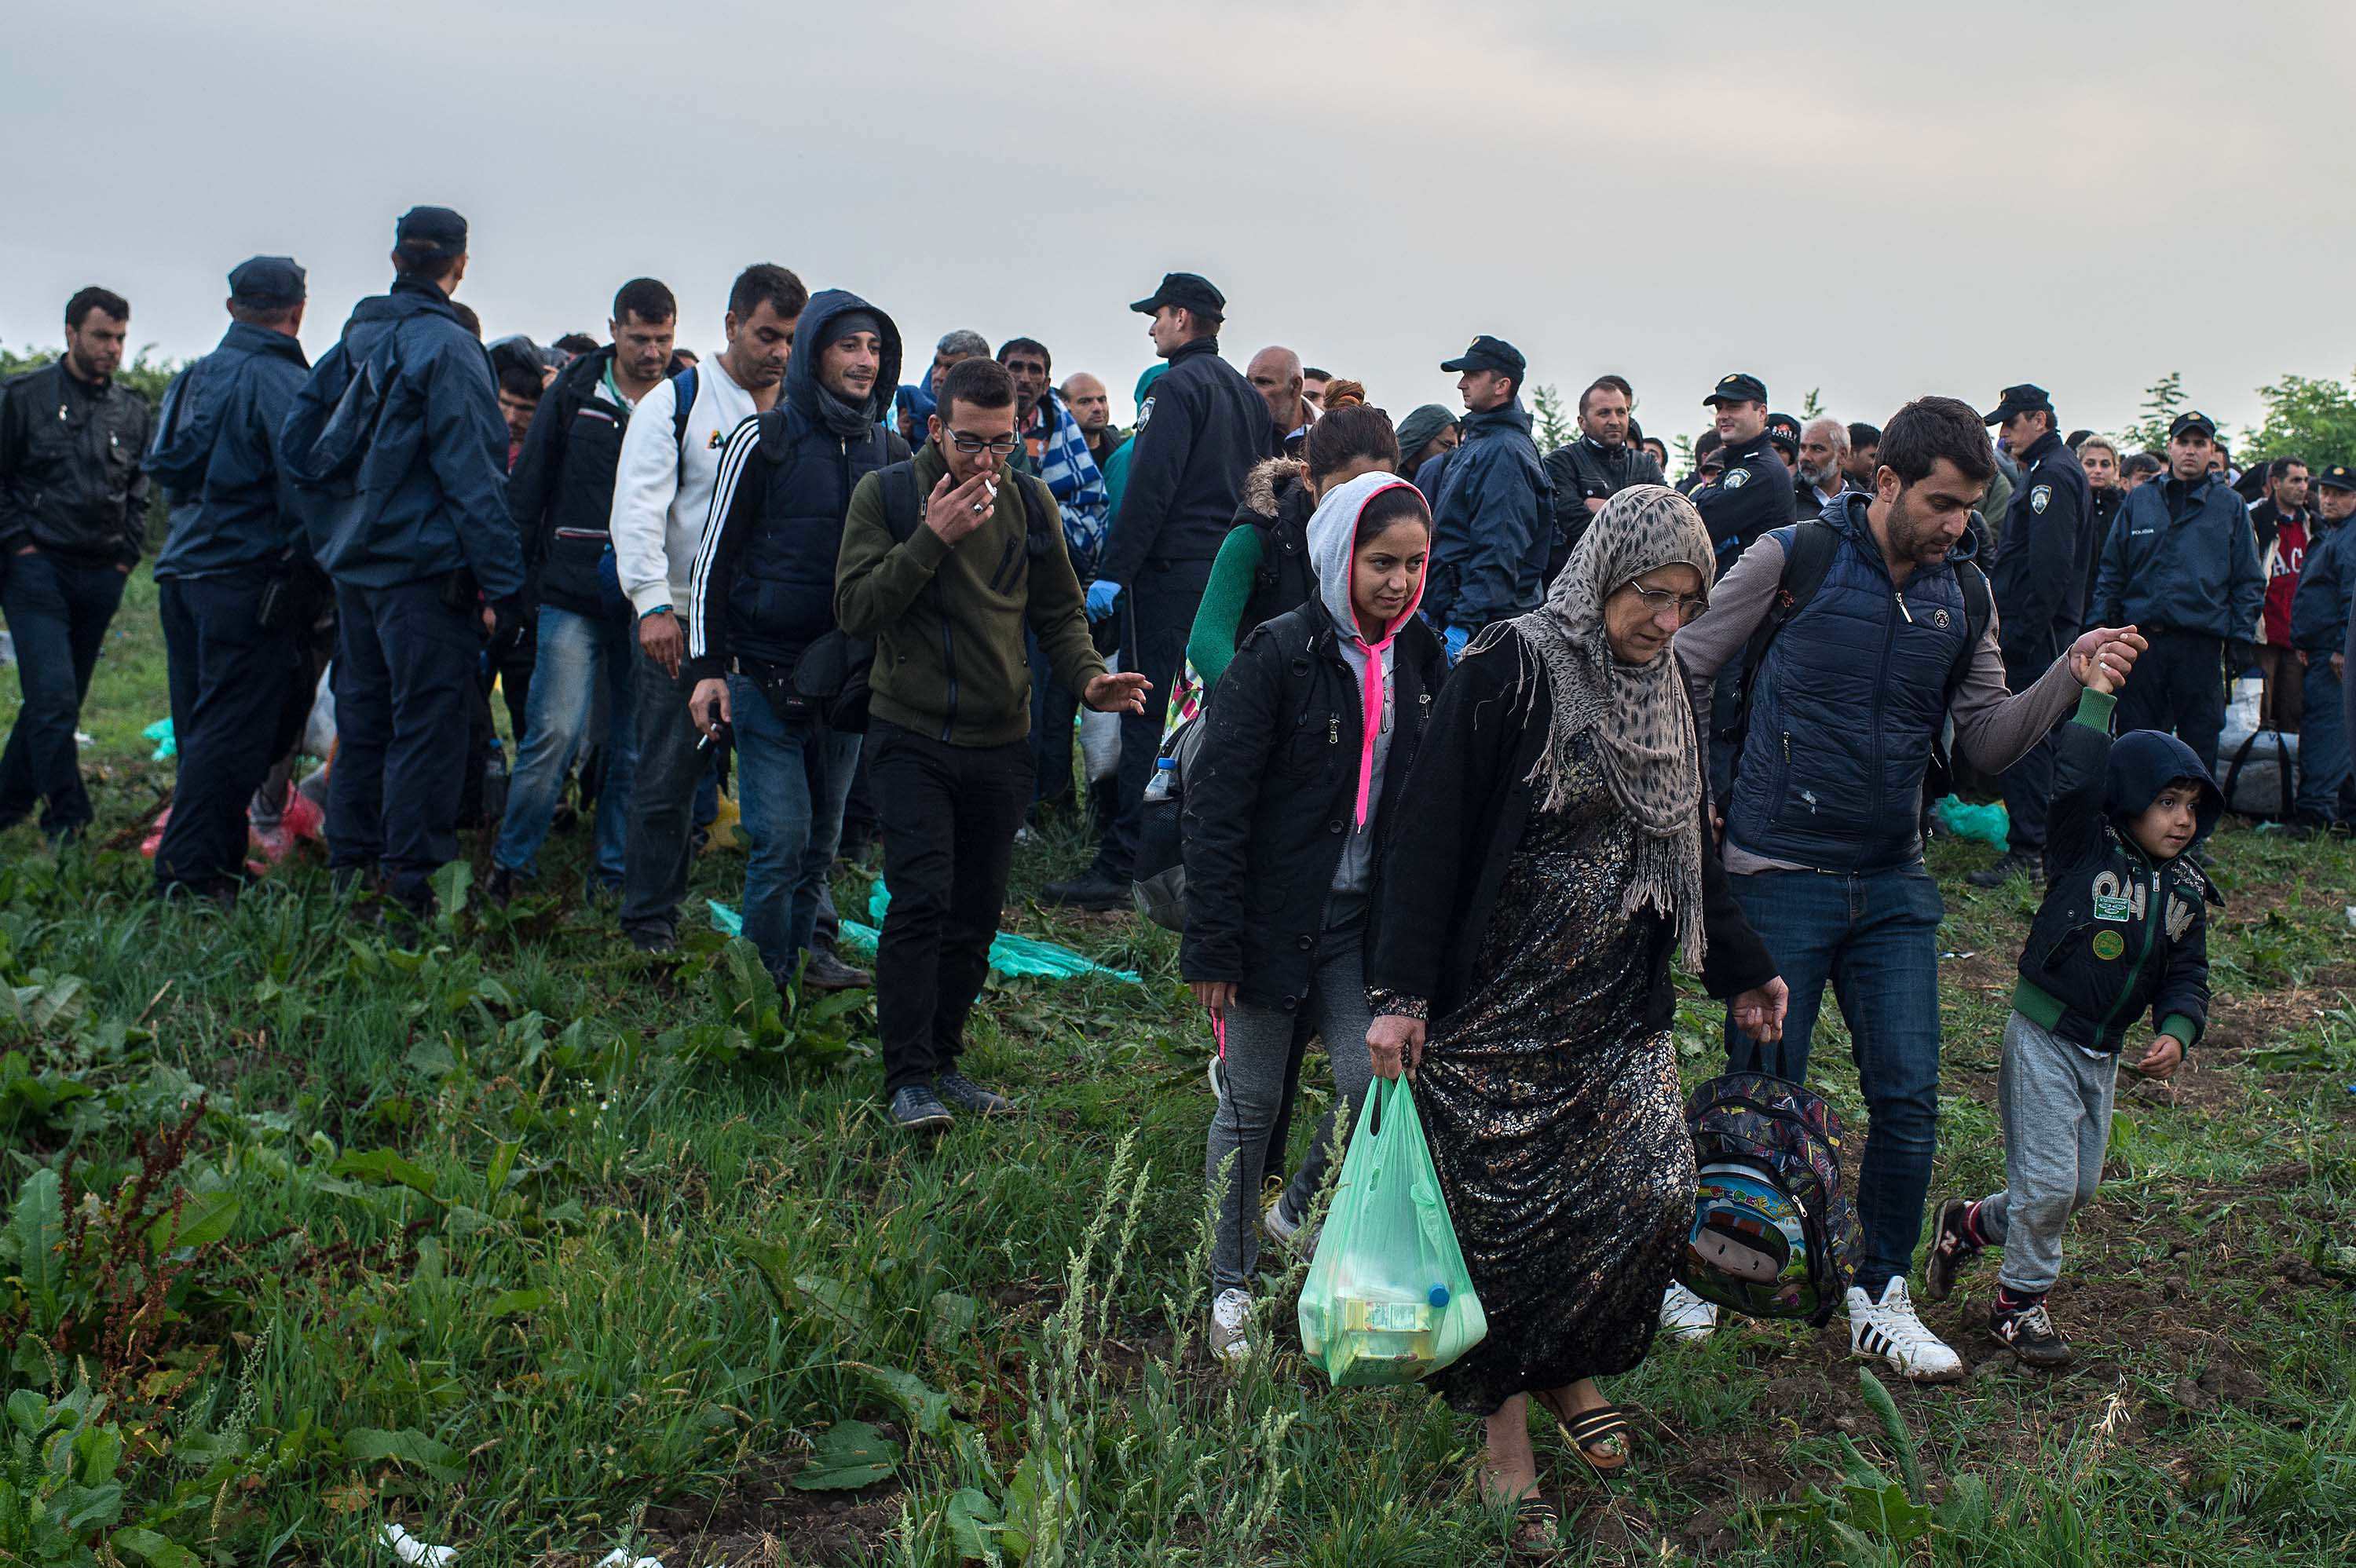 Migrants heading to a refugee transit camp in Croatia.